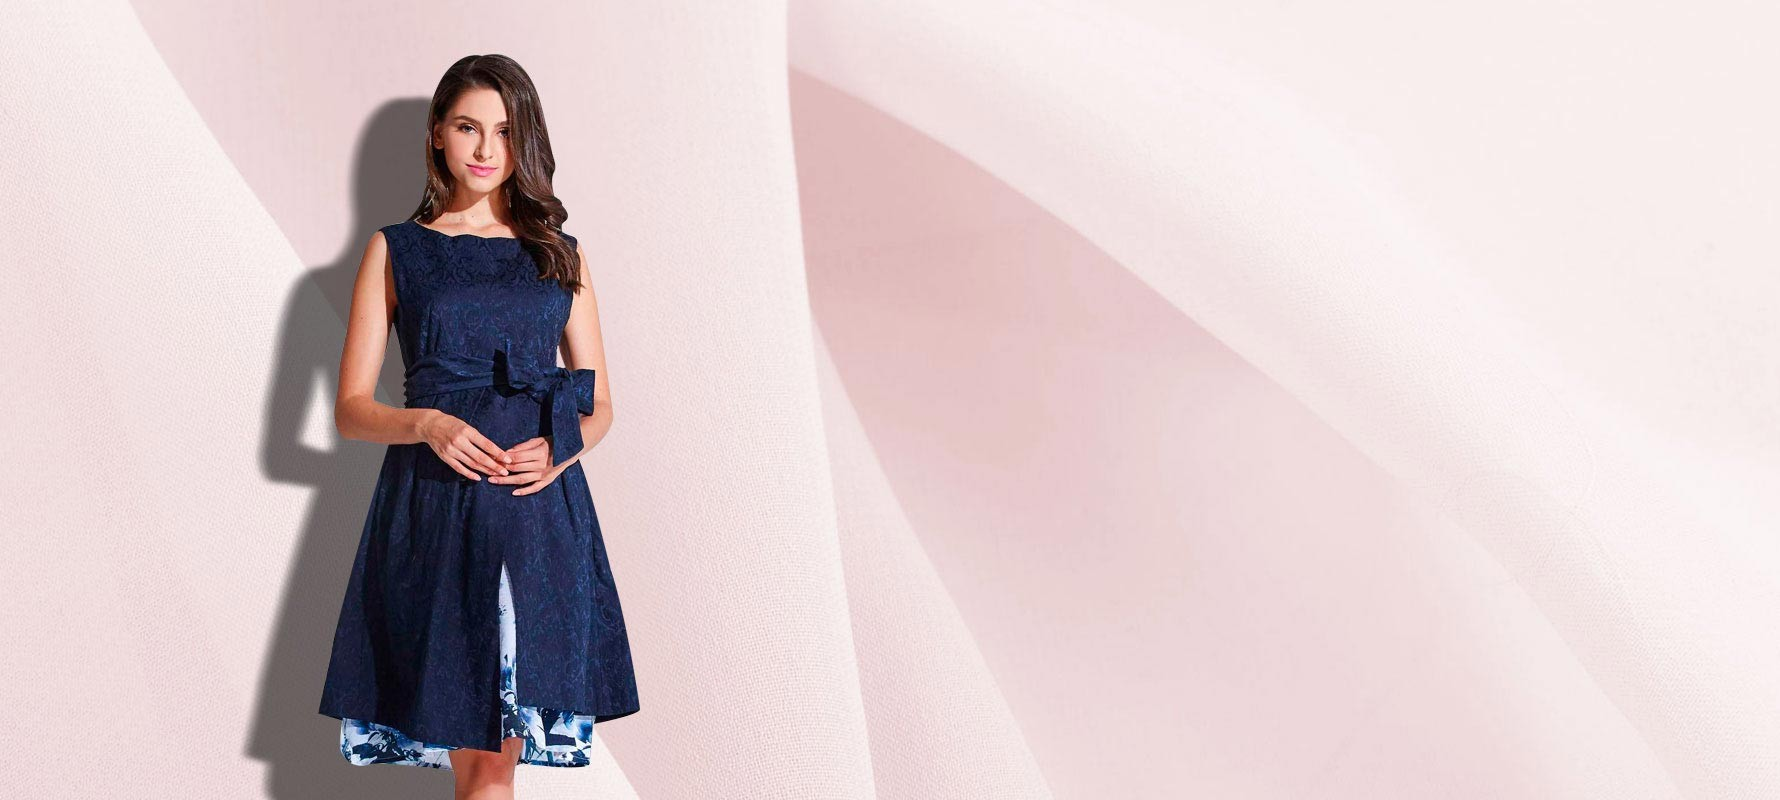 Discover the selection maternity and nursing formal dresses